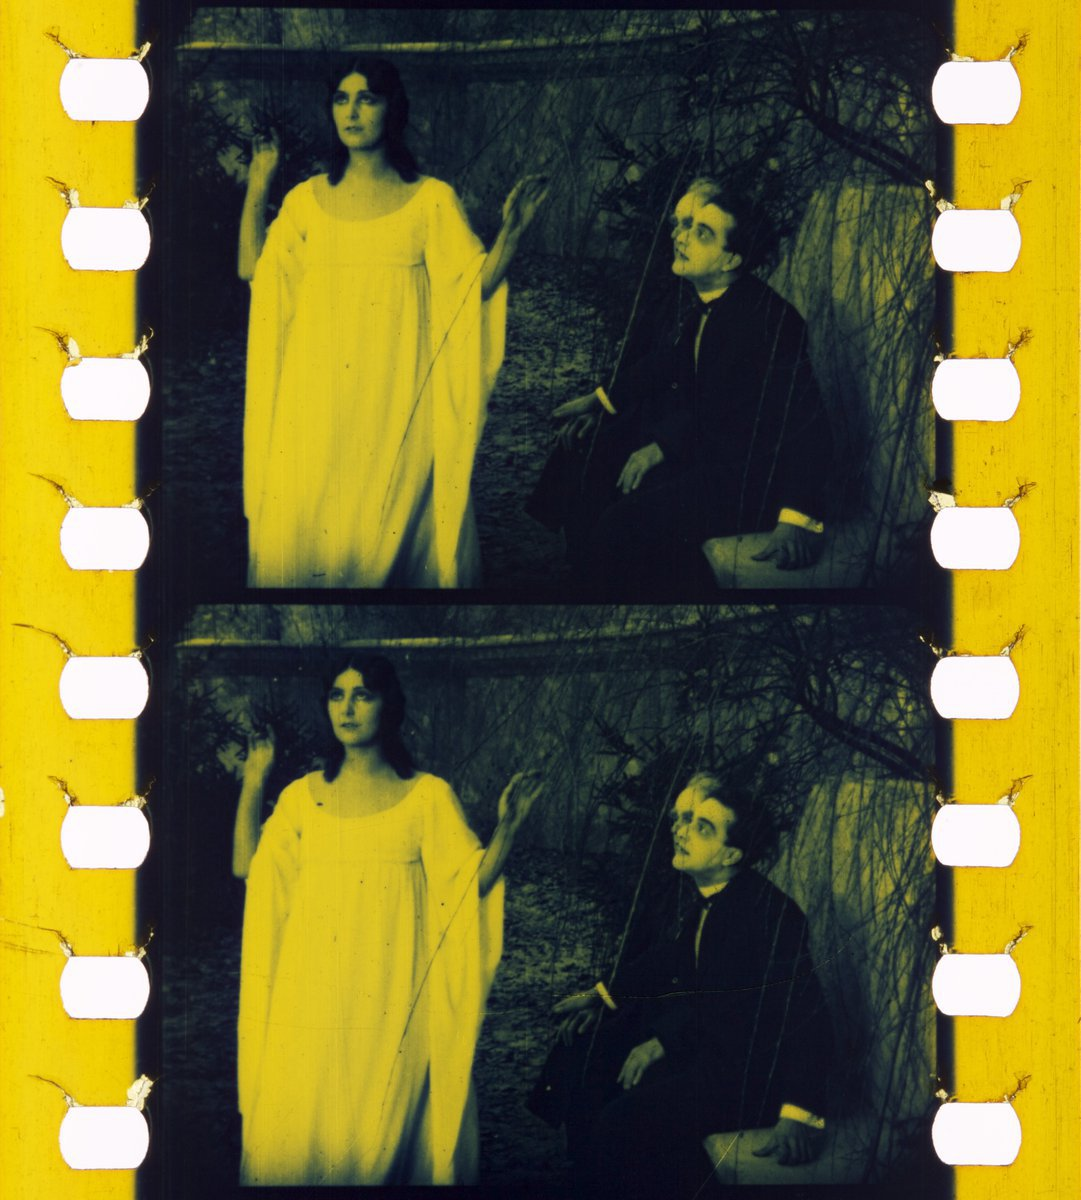 Das Cabinet des Dr. Caligari (The Cabinet of Dr. Caligari)